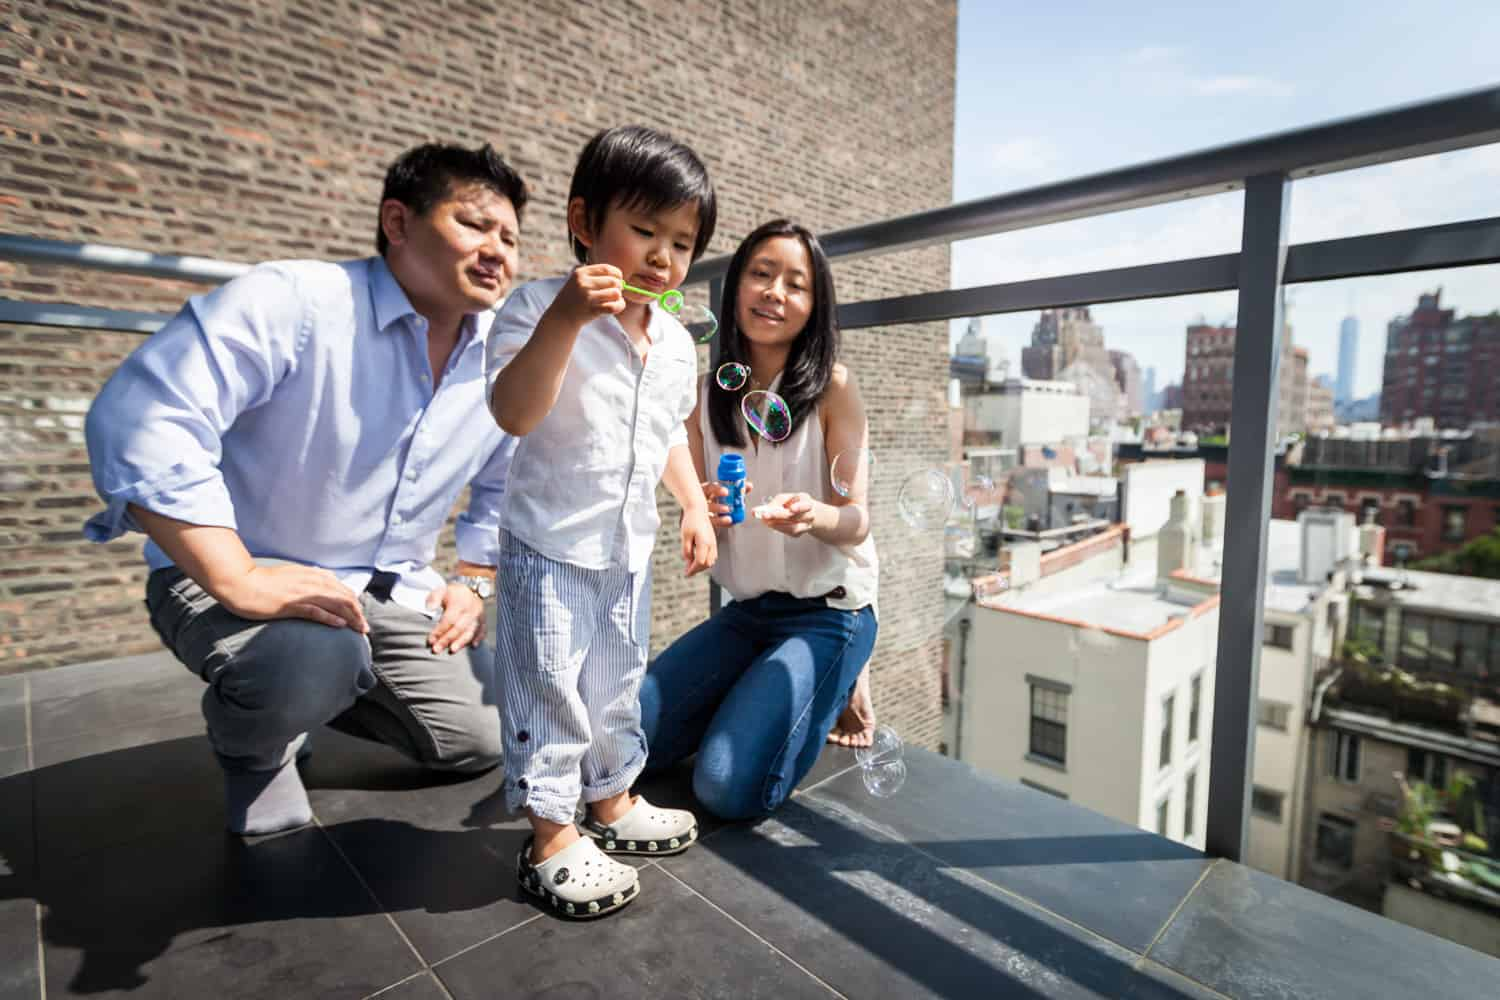 Chelsea family portrait of parents and little boy blowing bubbles on terrace